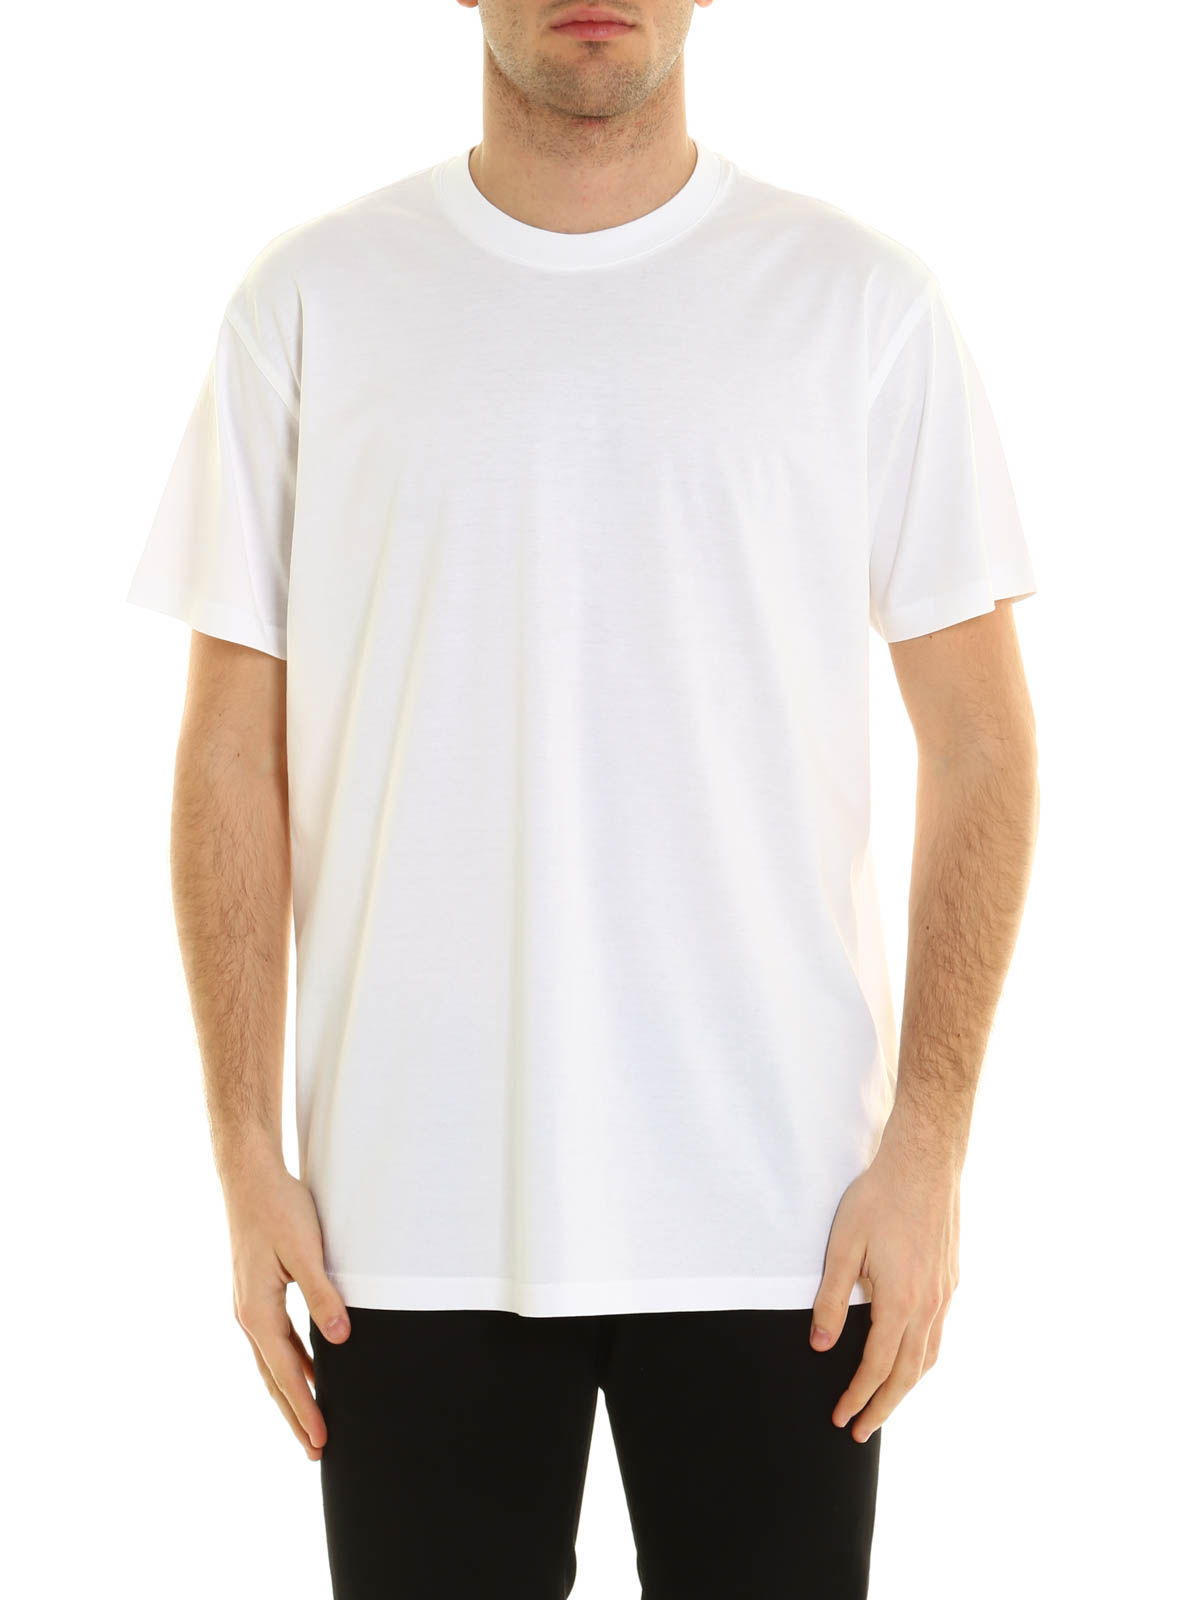 Silk embroidery cotton t shirt by givenchy t shirts ikrix for Cotton silk tee shirts